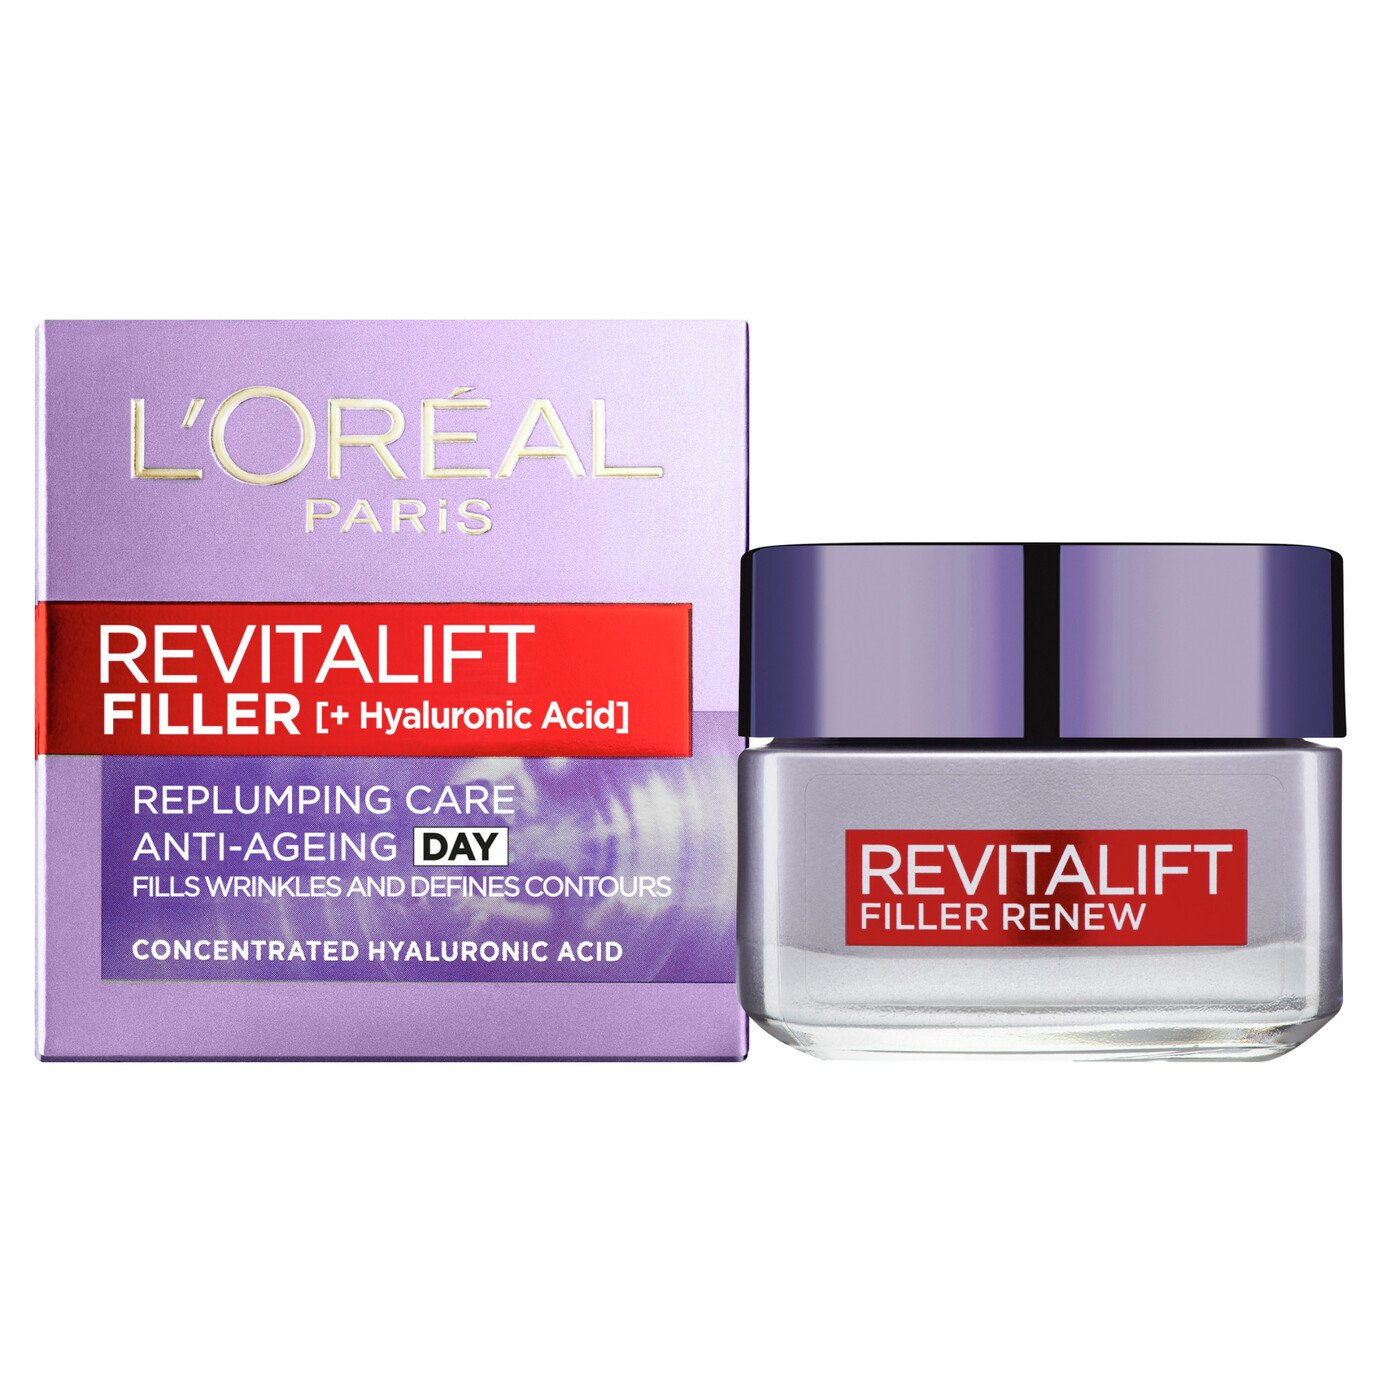 L'Oreal Paris Skin De Revitalift Filler Day - 50ml